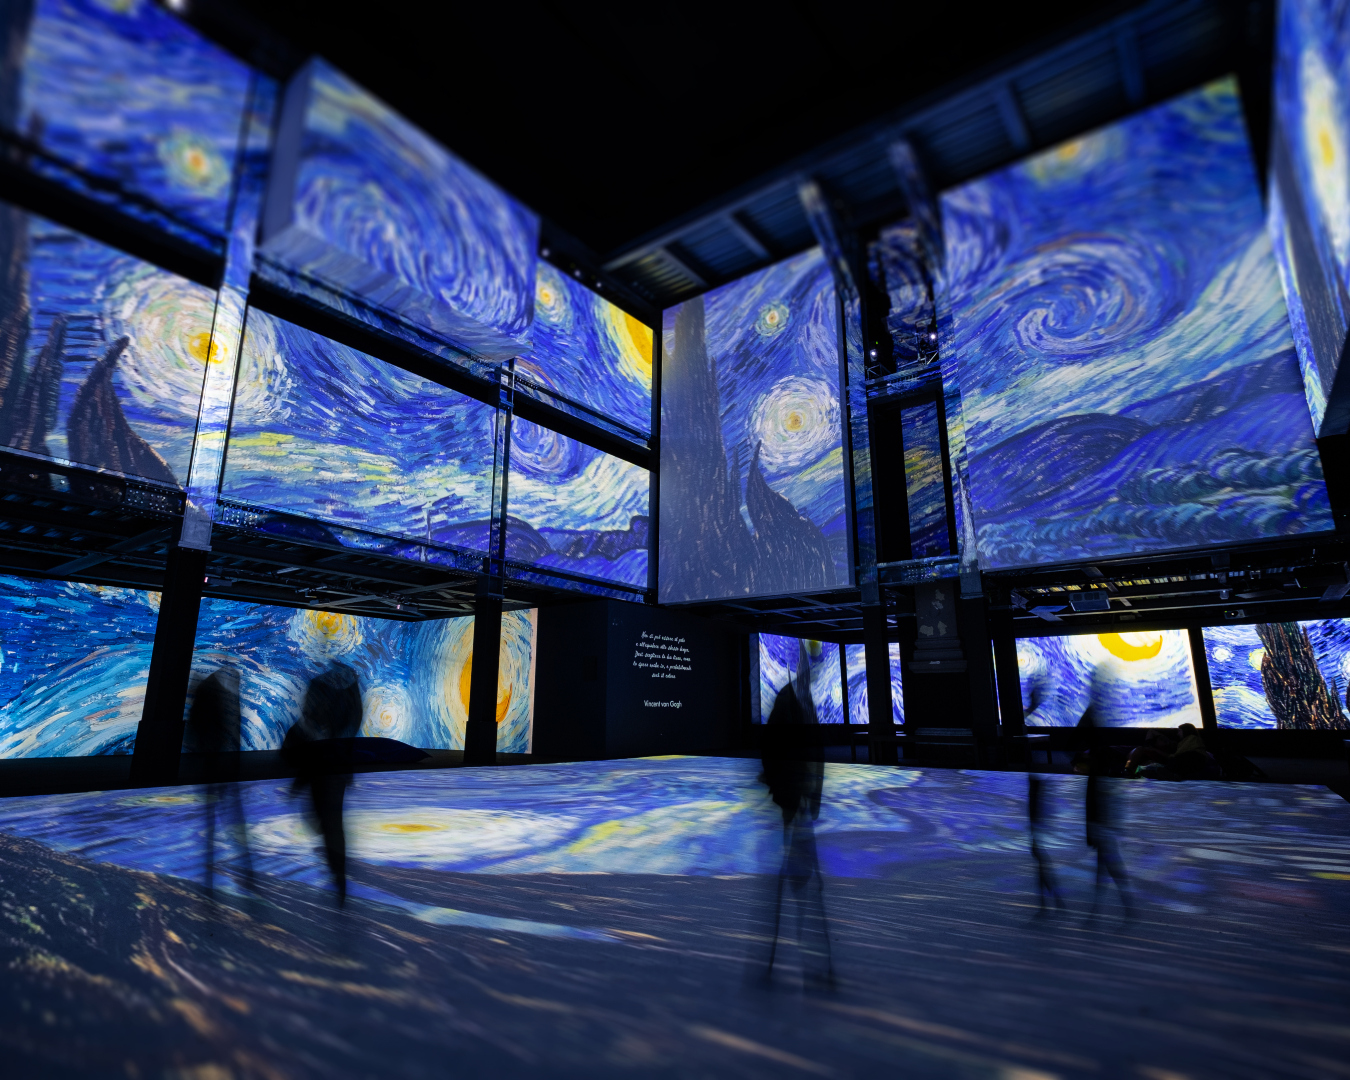 People take in an immersive art installation featuring Vincent Van Gogh's most famous works, including Starry Night